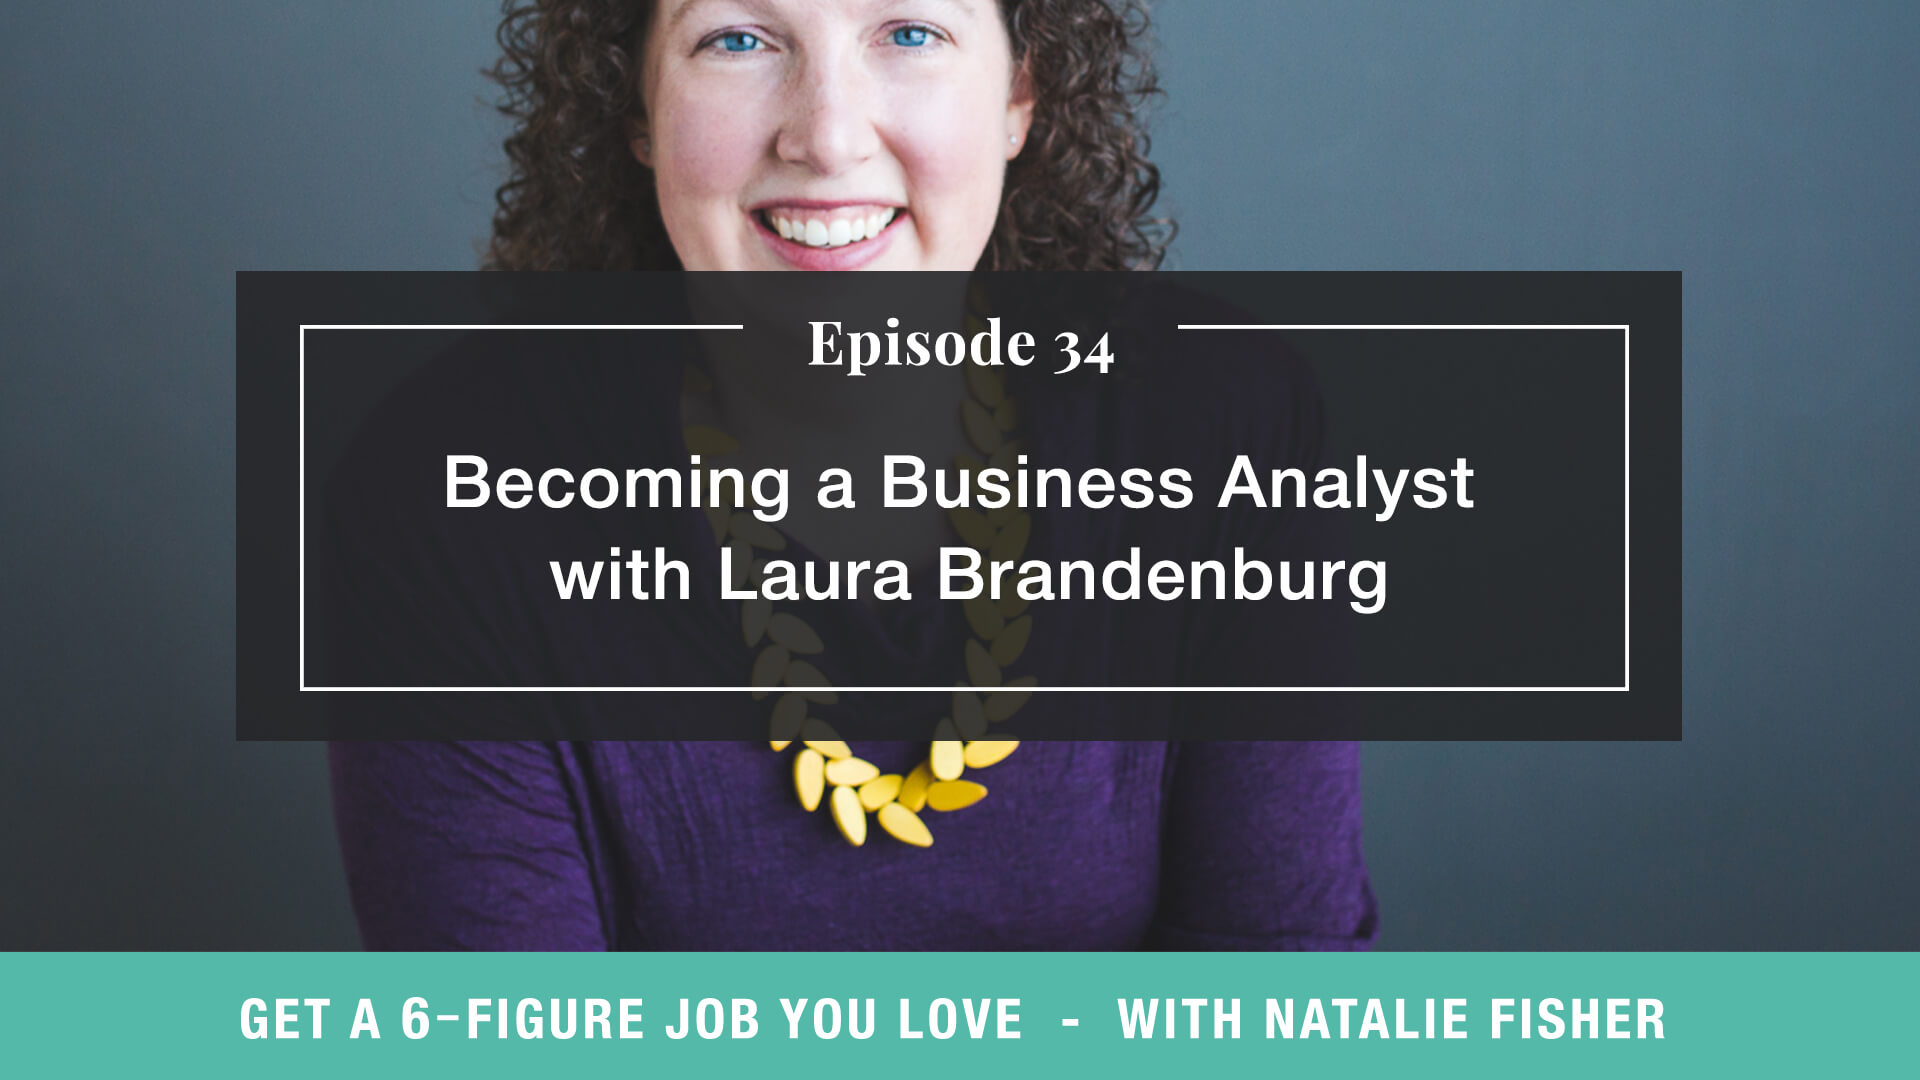 Becoming a Business Analyst with Laura Brandenburg